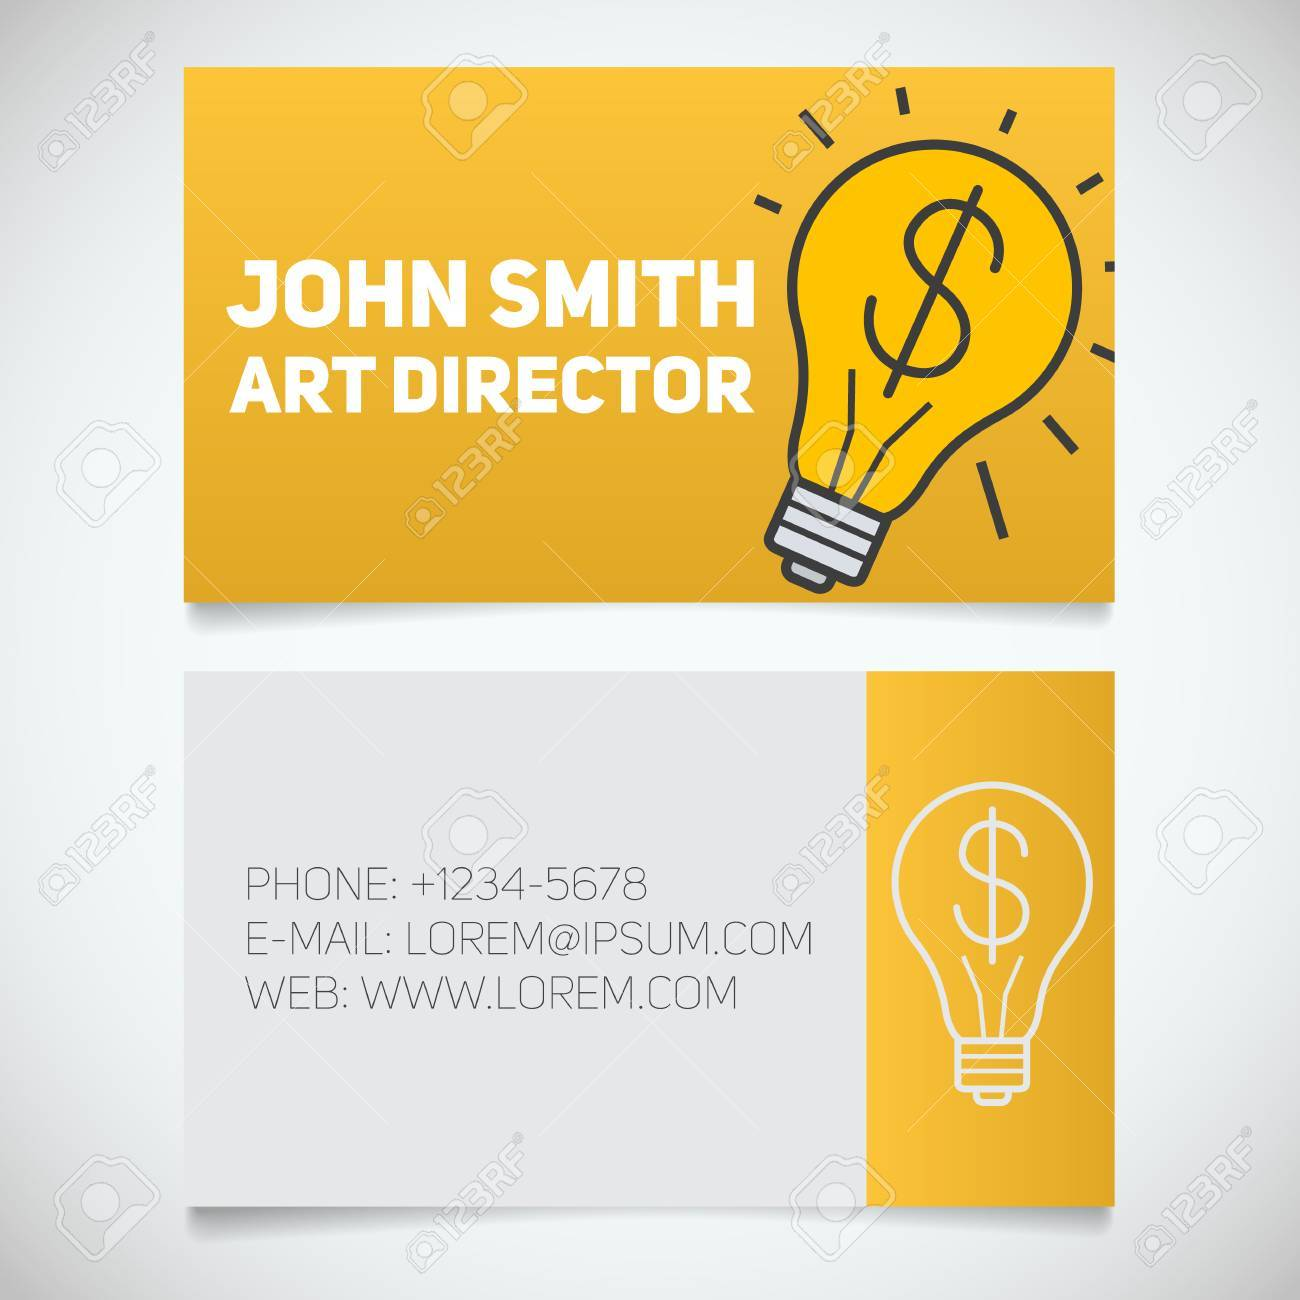 Startup Weekend Free Business Cards Image collections - Card Design ...